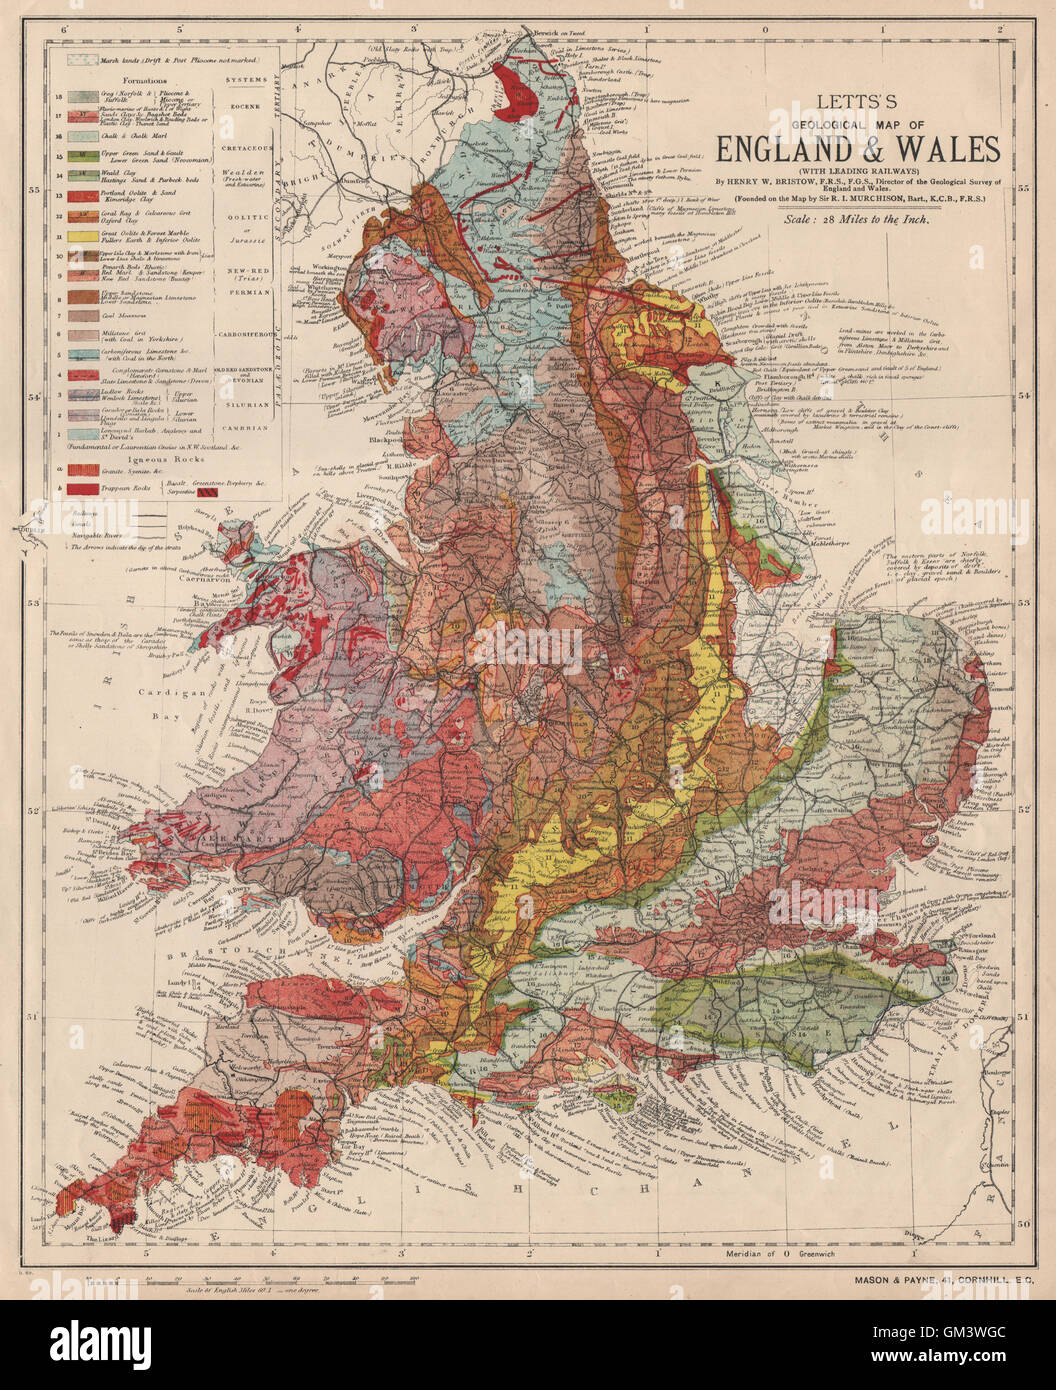 Map Of England To Colour.England Wales Colour Geological Map Letts 1889 Stock Photo